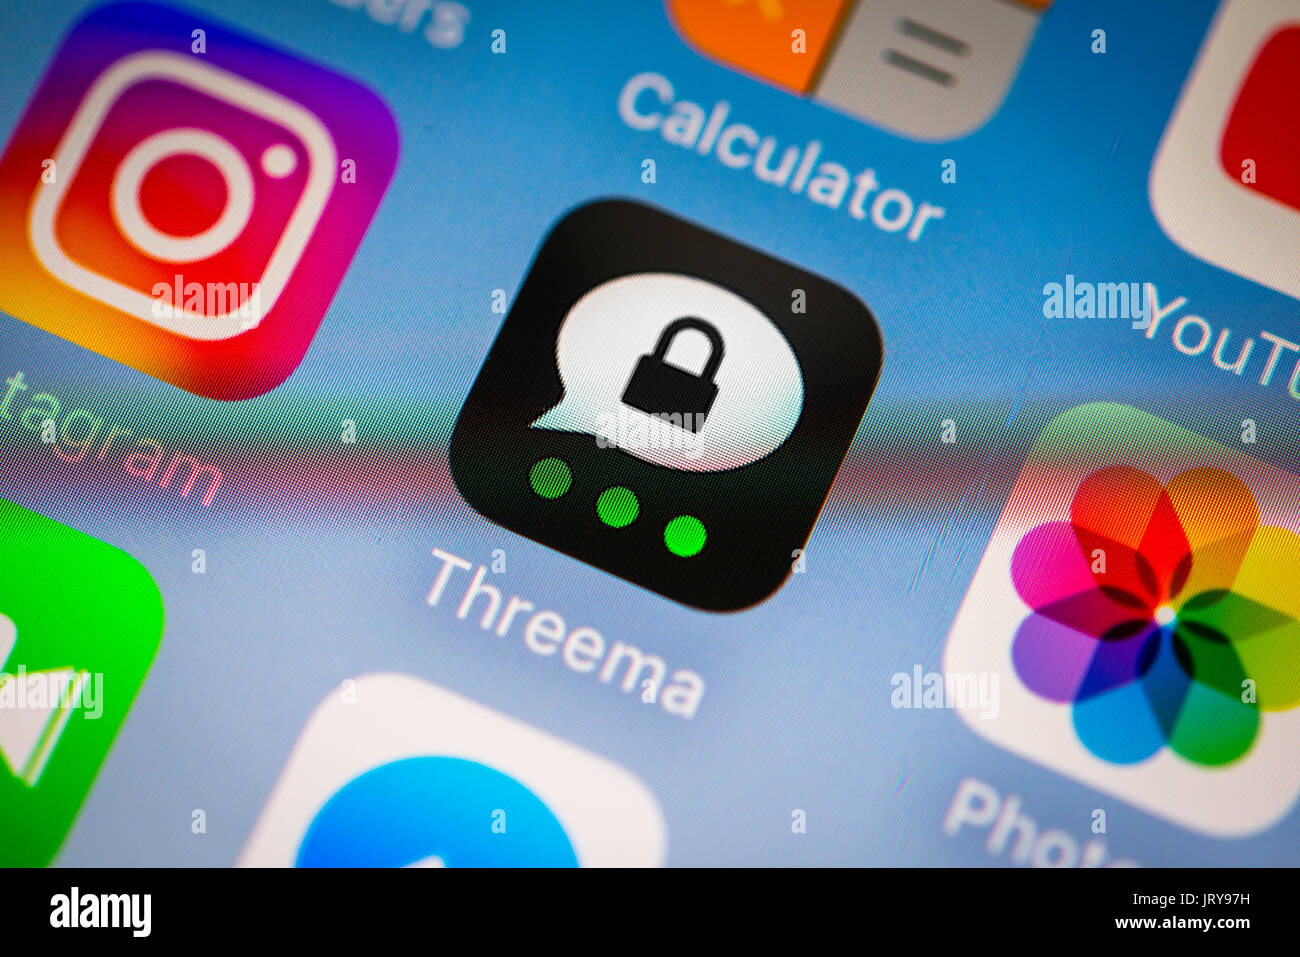 Threema, Privacy, Instant messenger service, App icons, Display on a cell phone screen, Smartphone, Instant messenger service - Stock Image